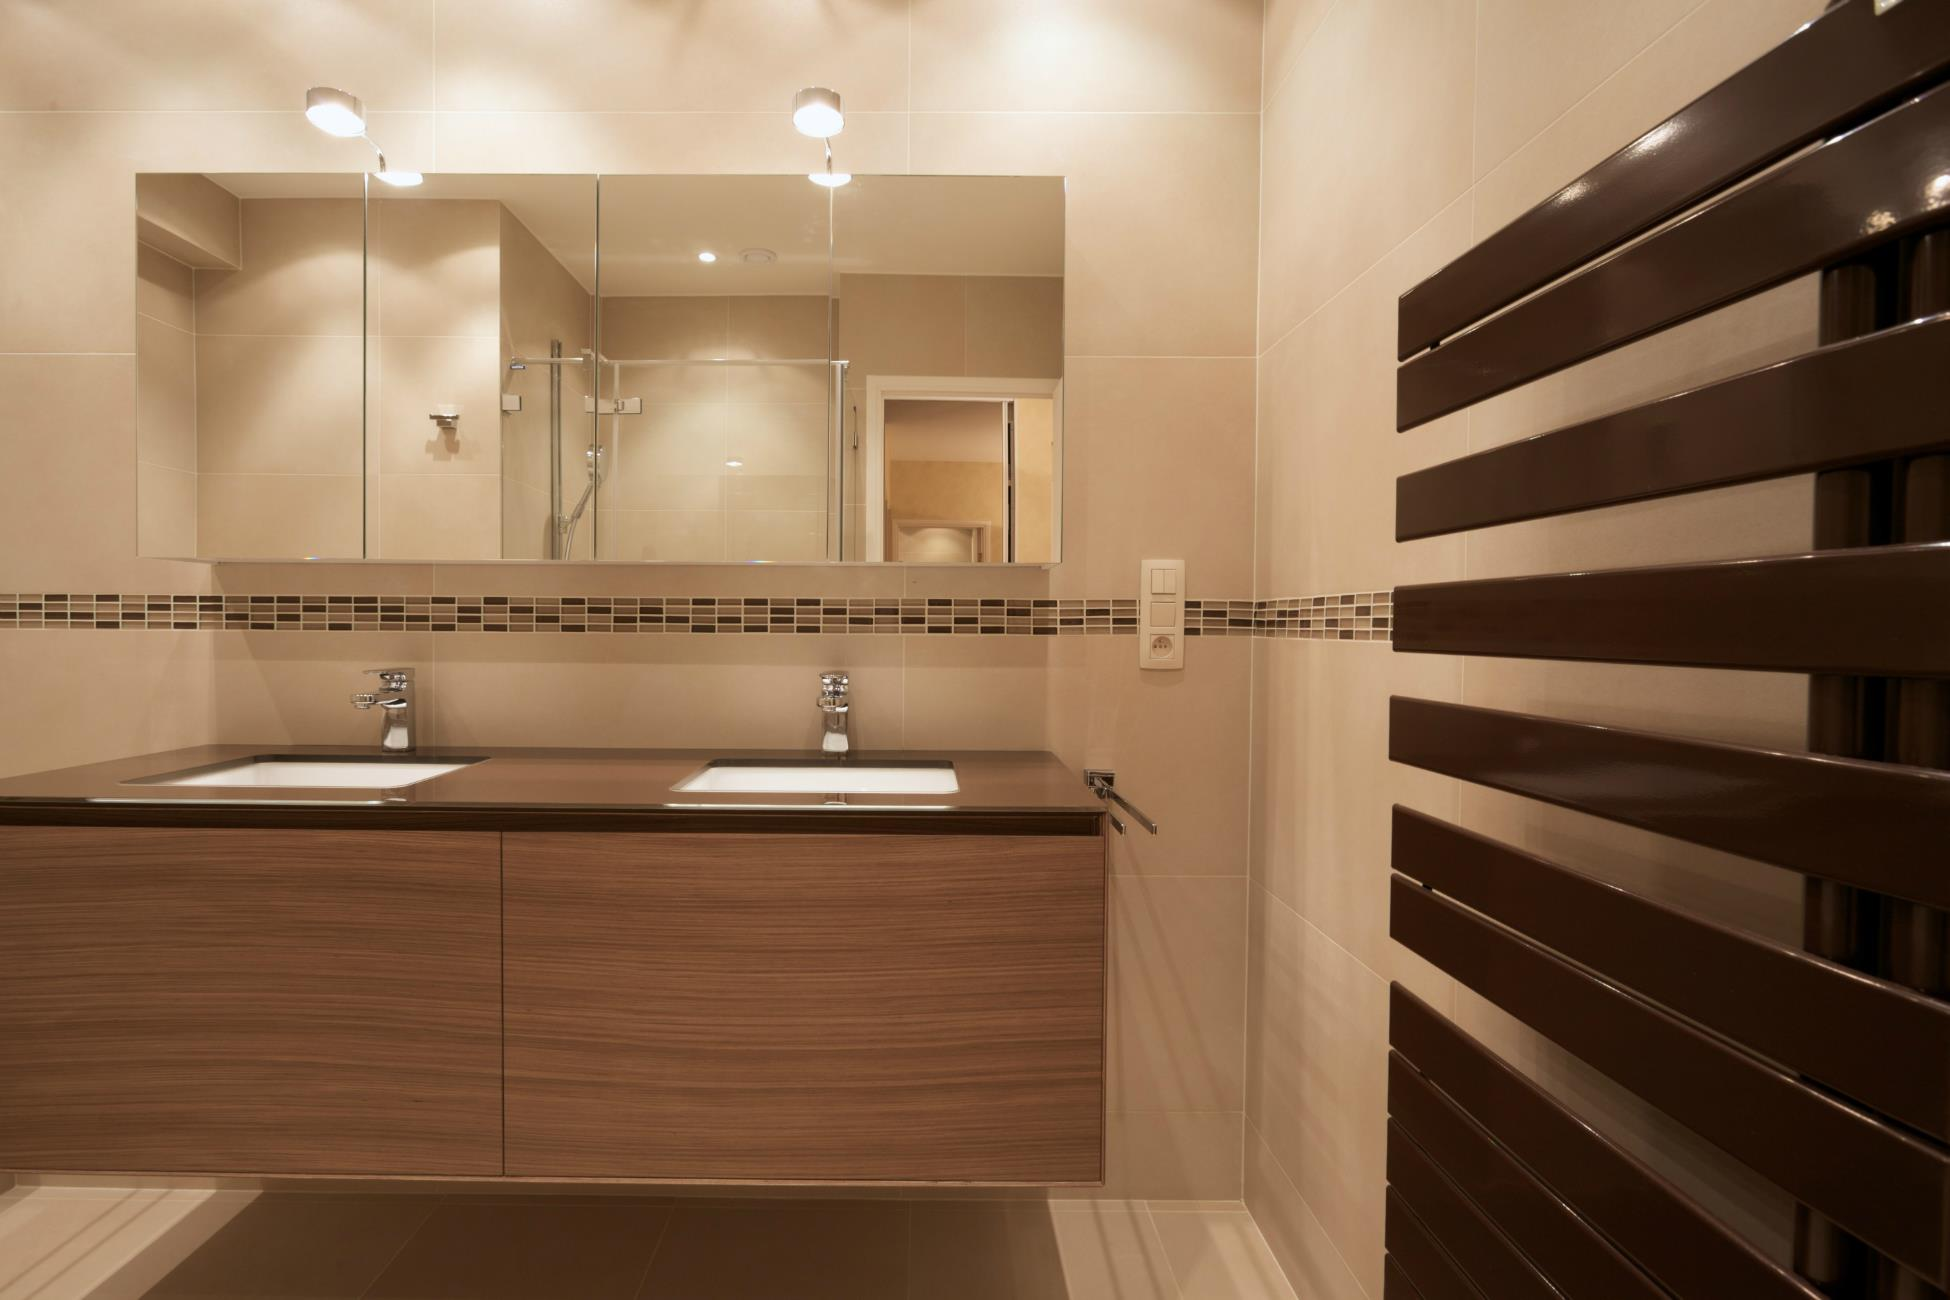 Salle de bain design r alisations renov management for Siege salle de bain design